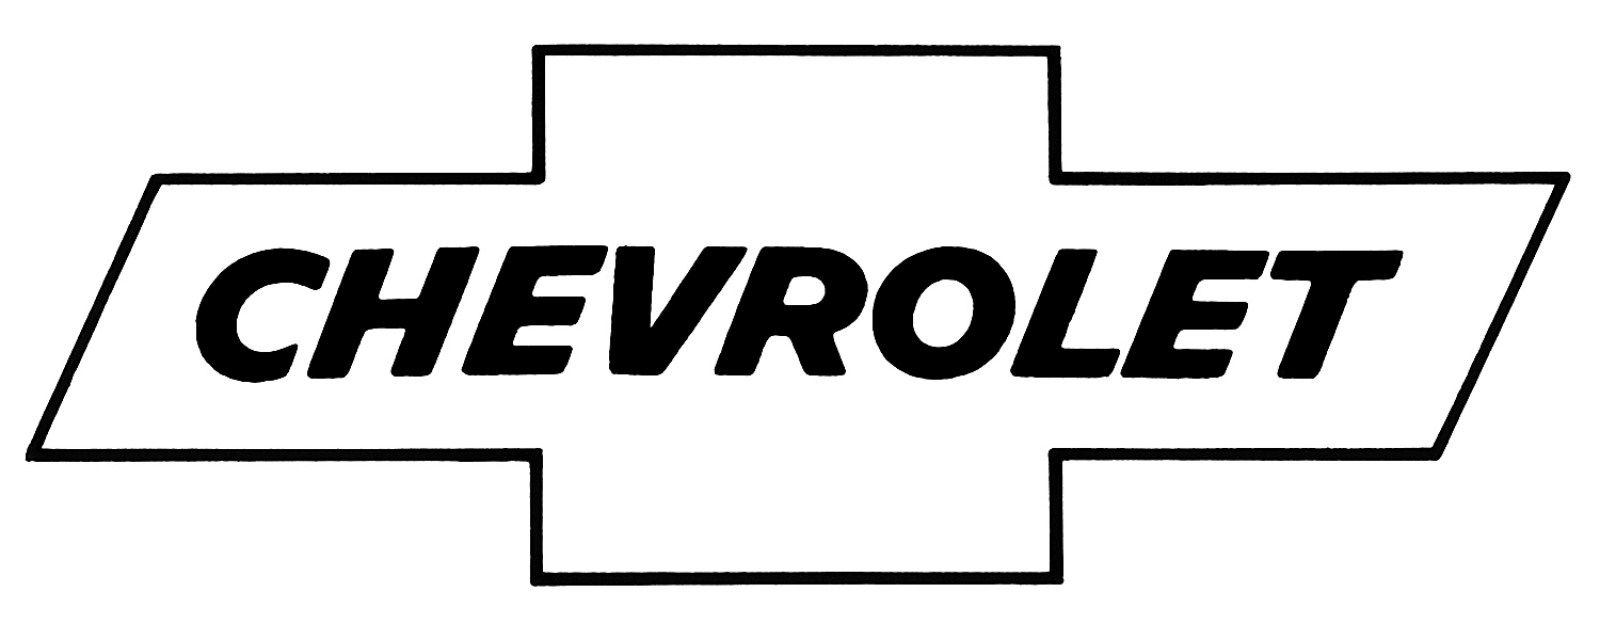 Image for Chevrolet Logo Vector | Proyectos que intentar ...